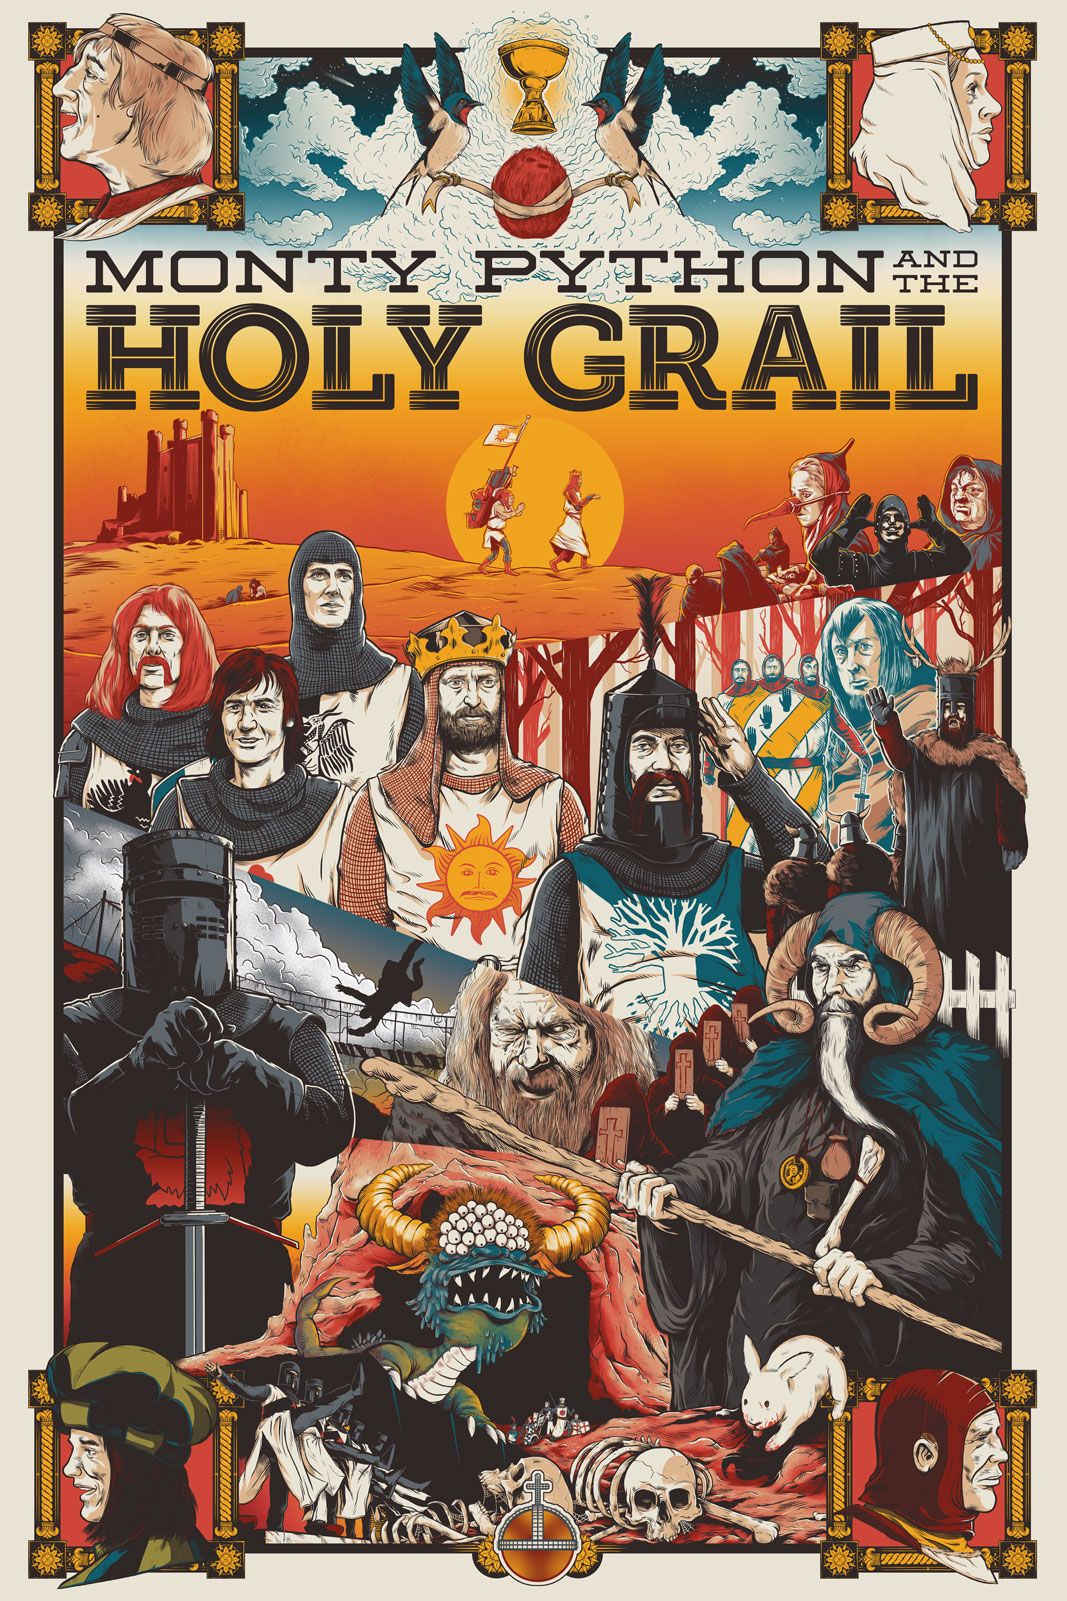 Monty Python The Holy Grail Movie Poster Nicholas